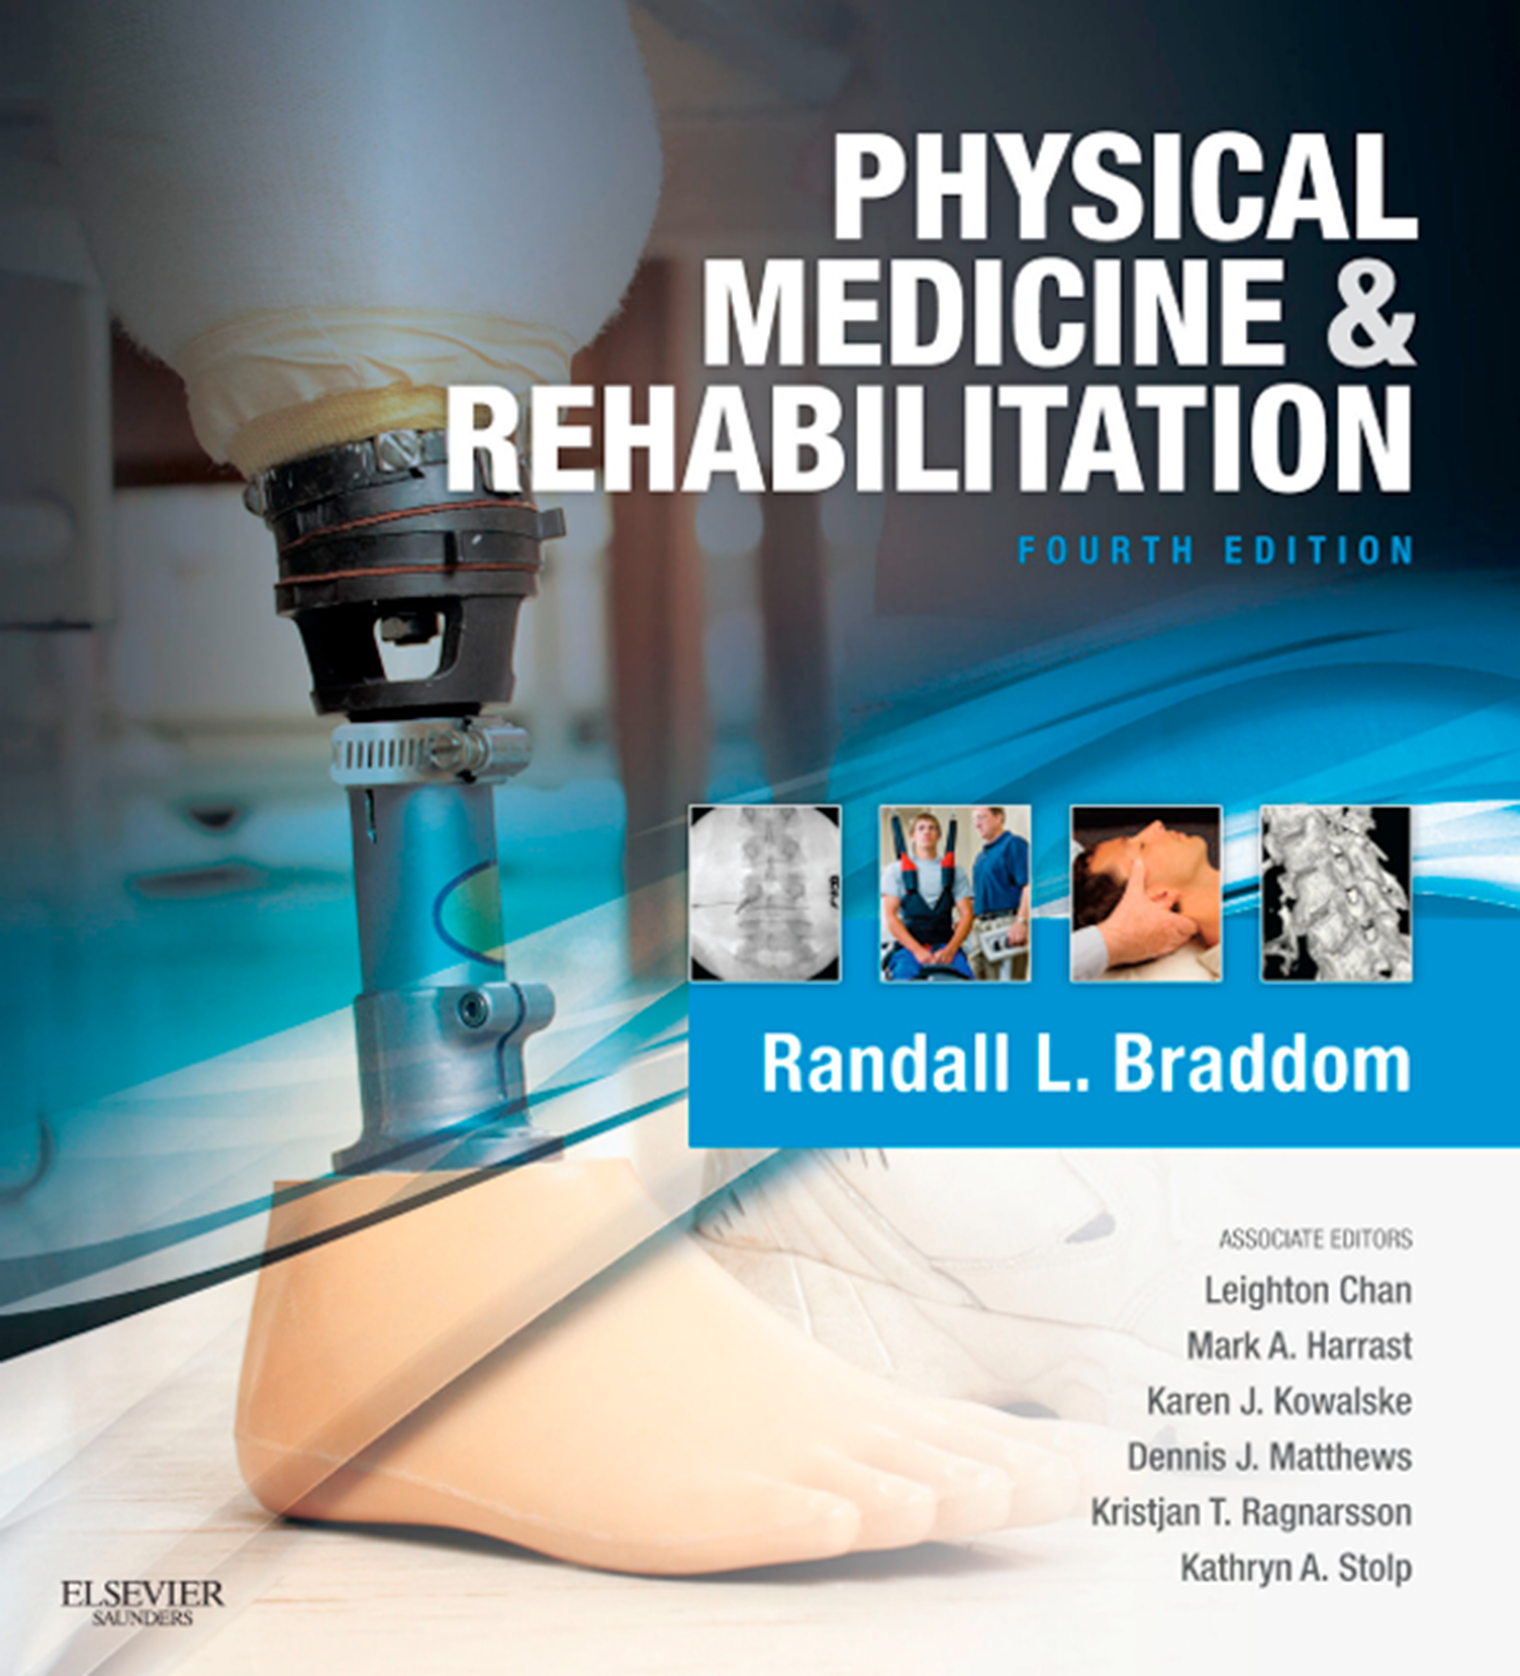 Books on physical therapy - Physical Medicine And Rehabilitation Expert Consult Online And Print Expert Consult Title Online Print Chapter 56 By Dr Susan Knapton And Geetha